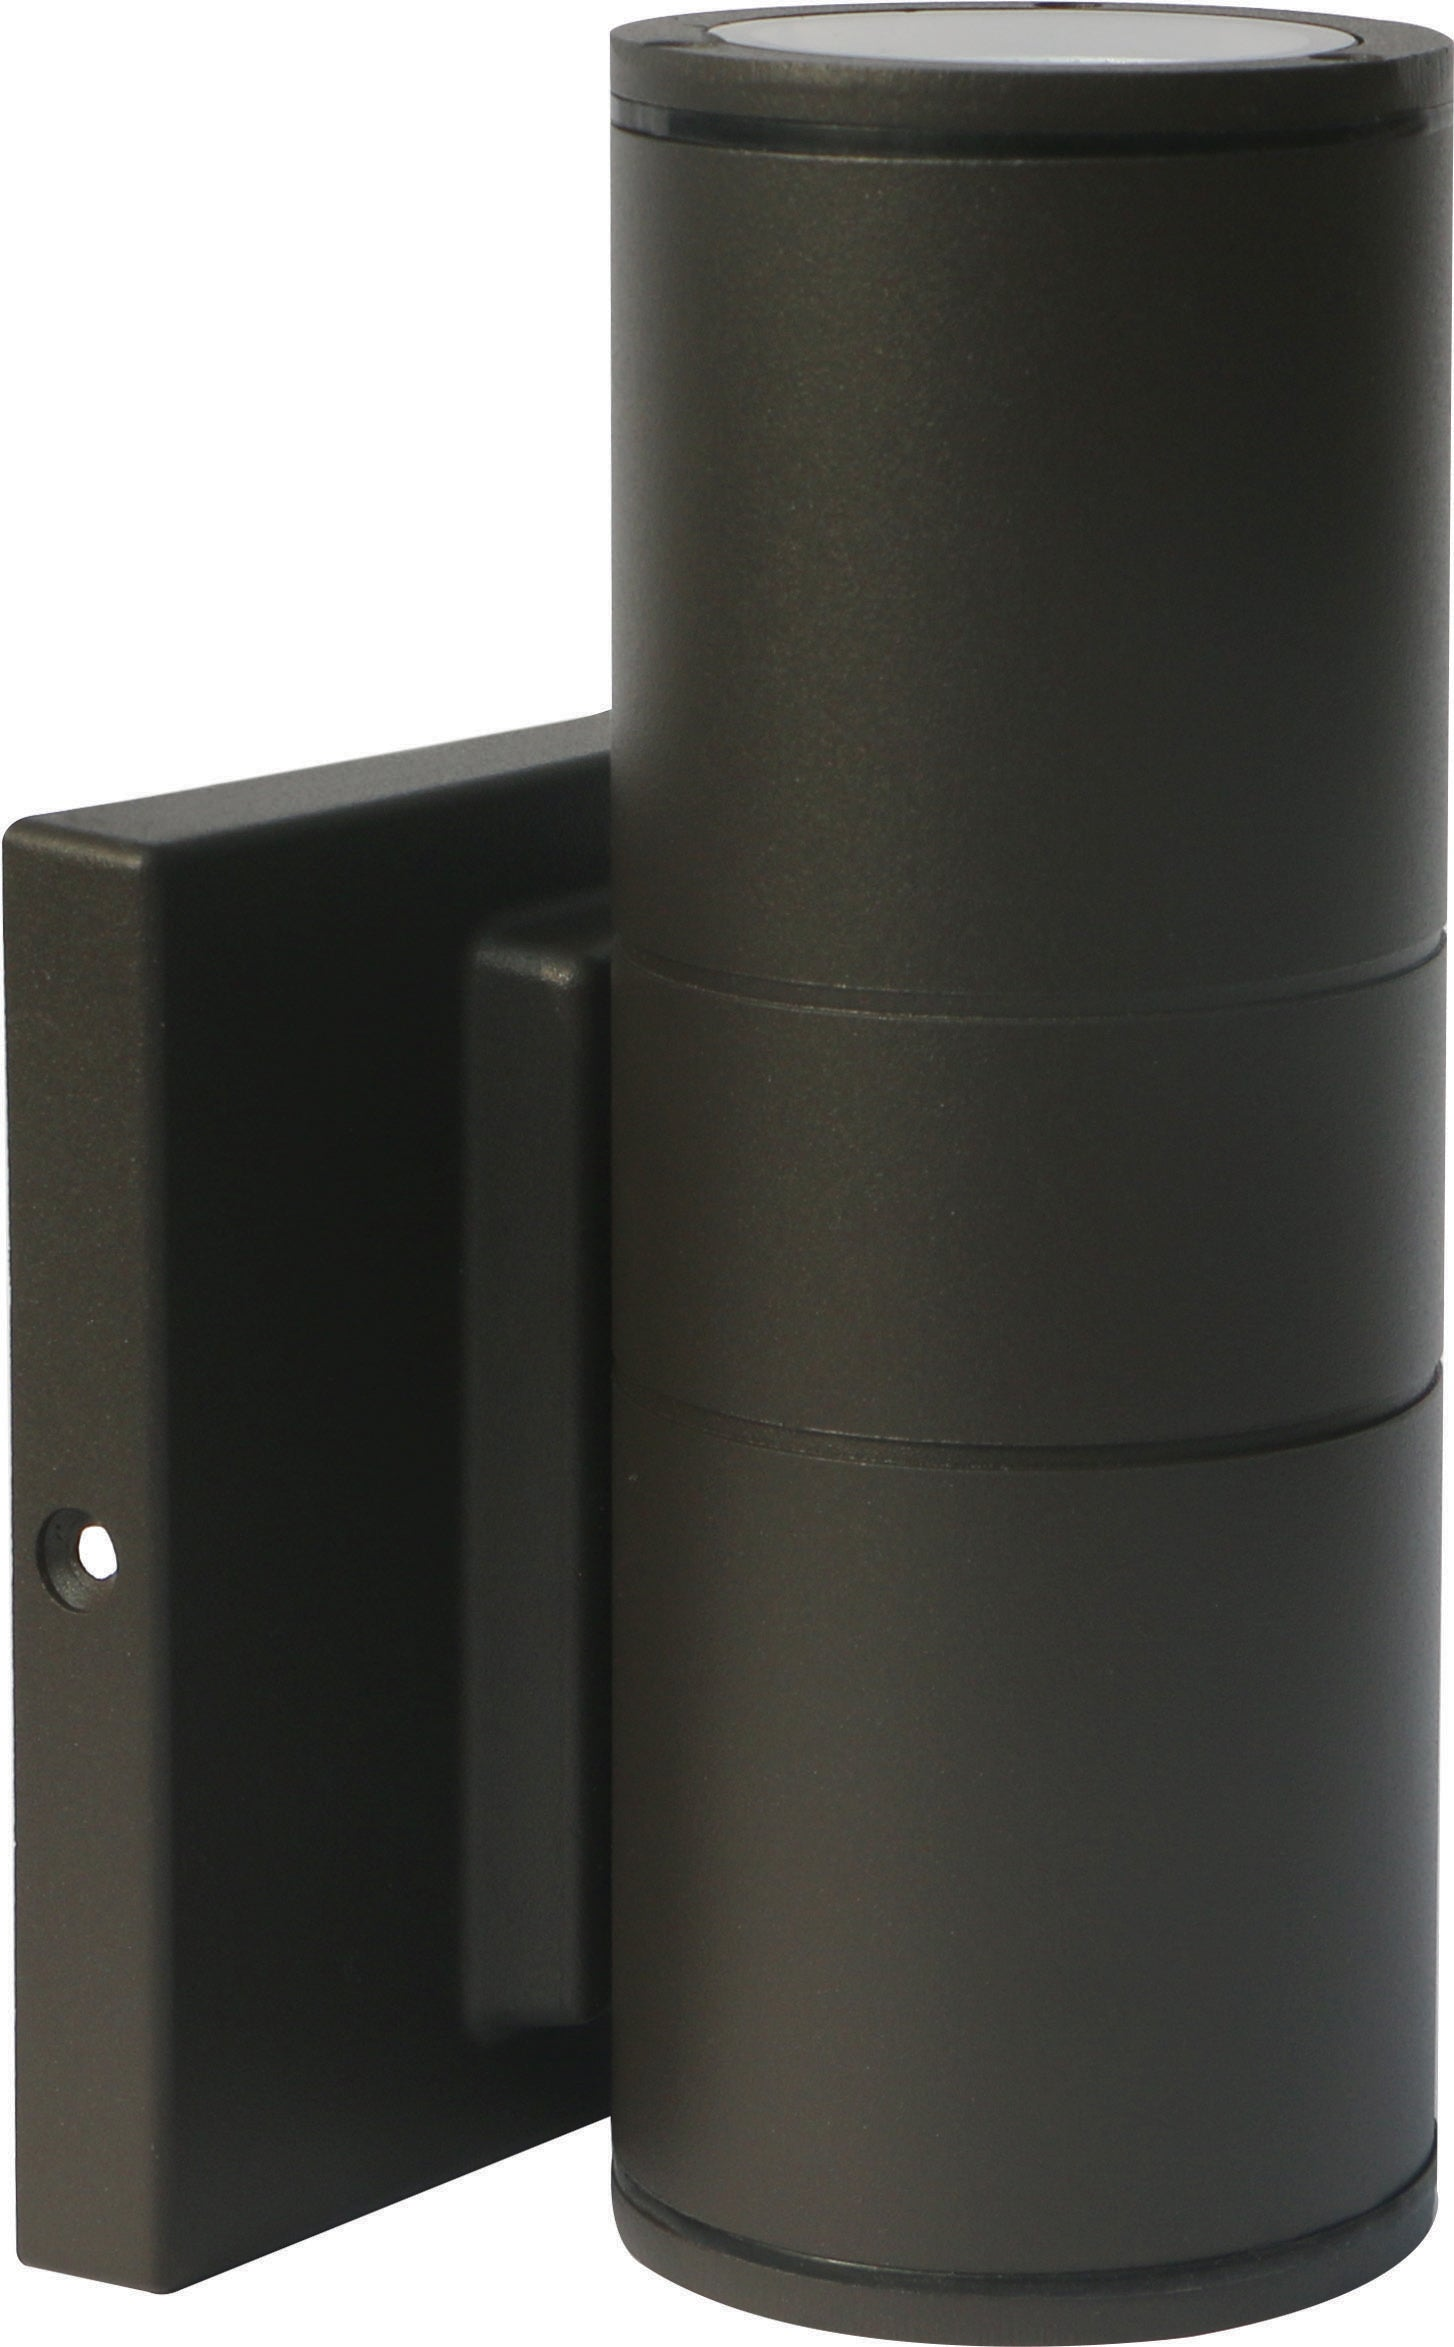 Nuvo 1-Light 10w Outdoor LED Wall Light Small Up or Down Sconce in Bronze Finish